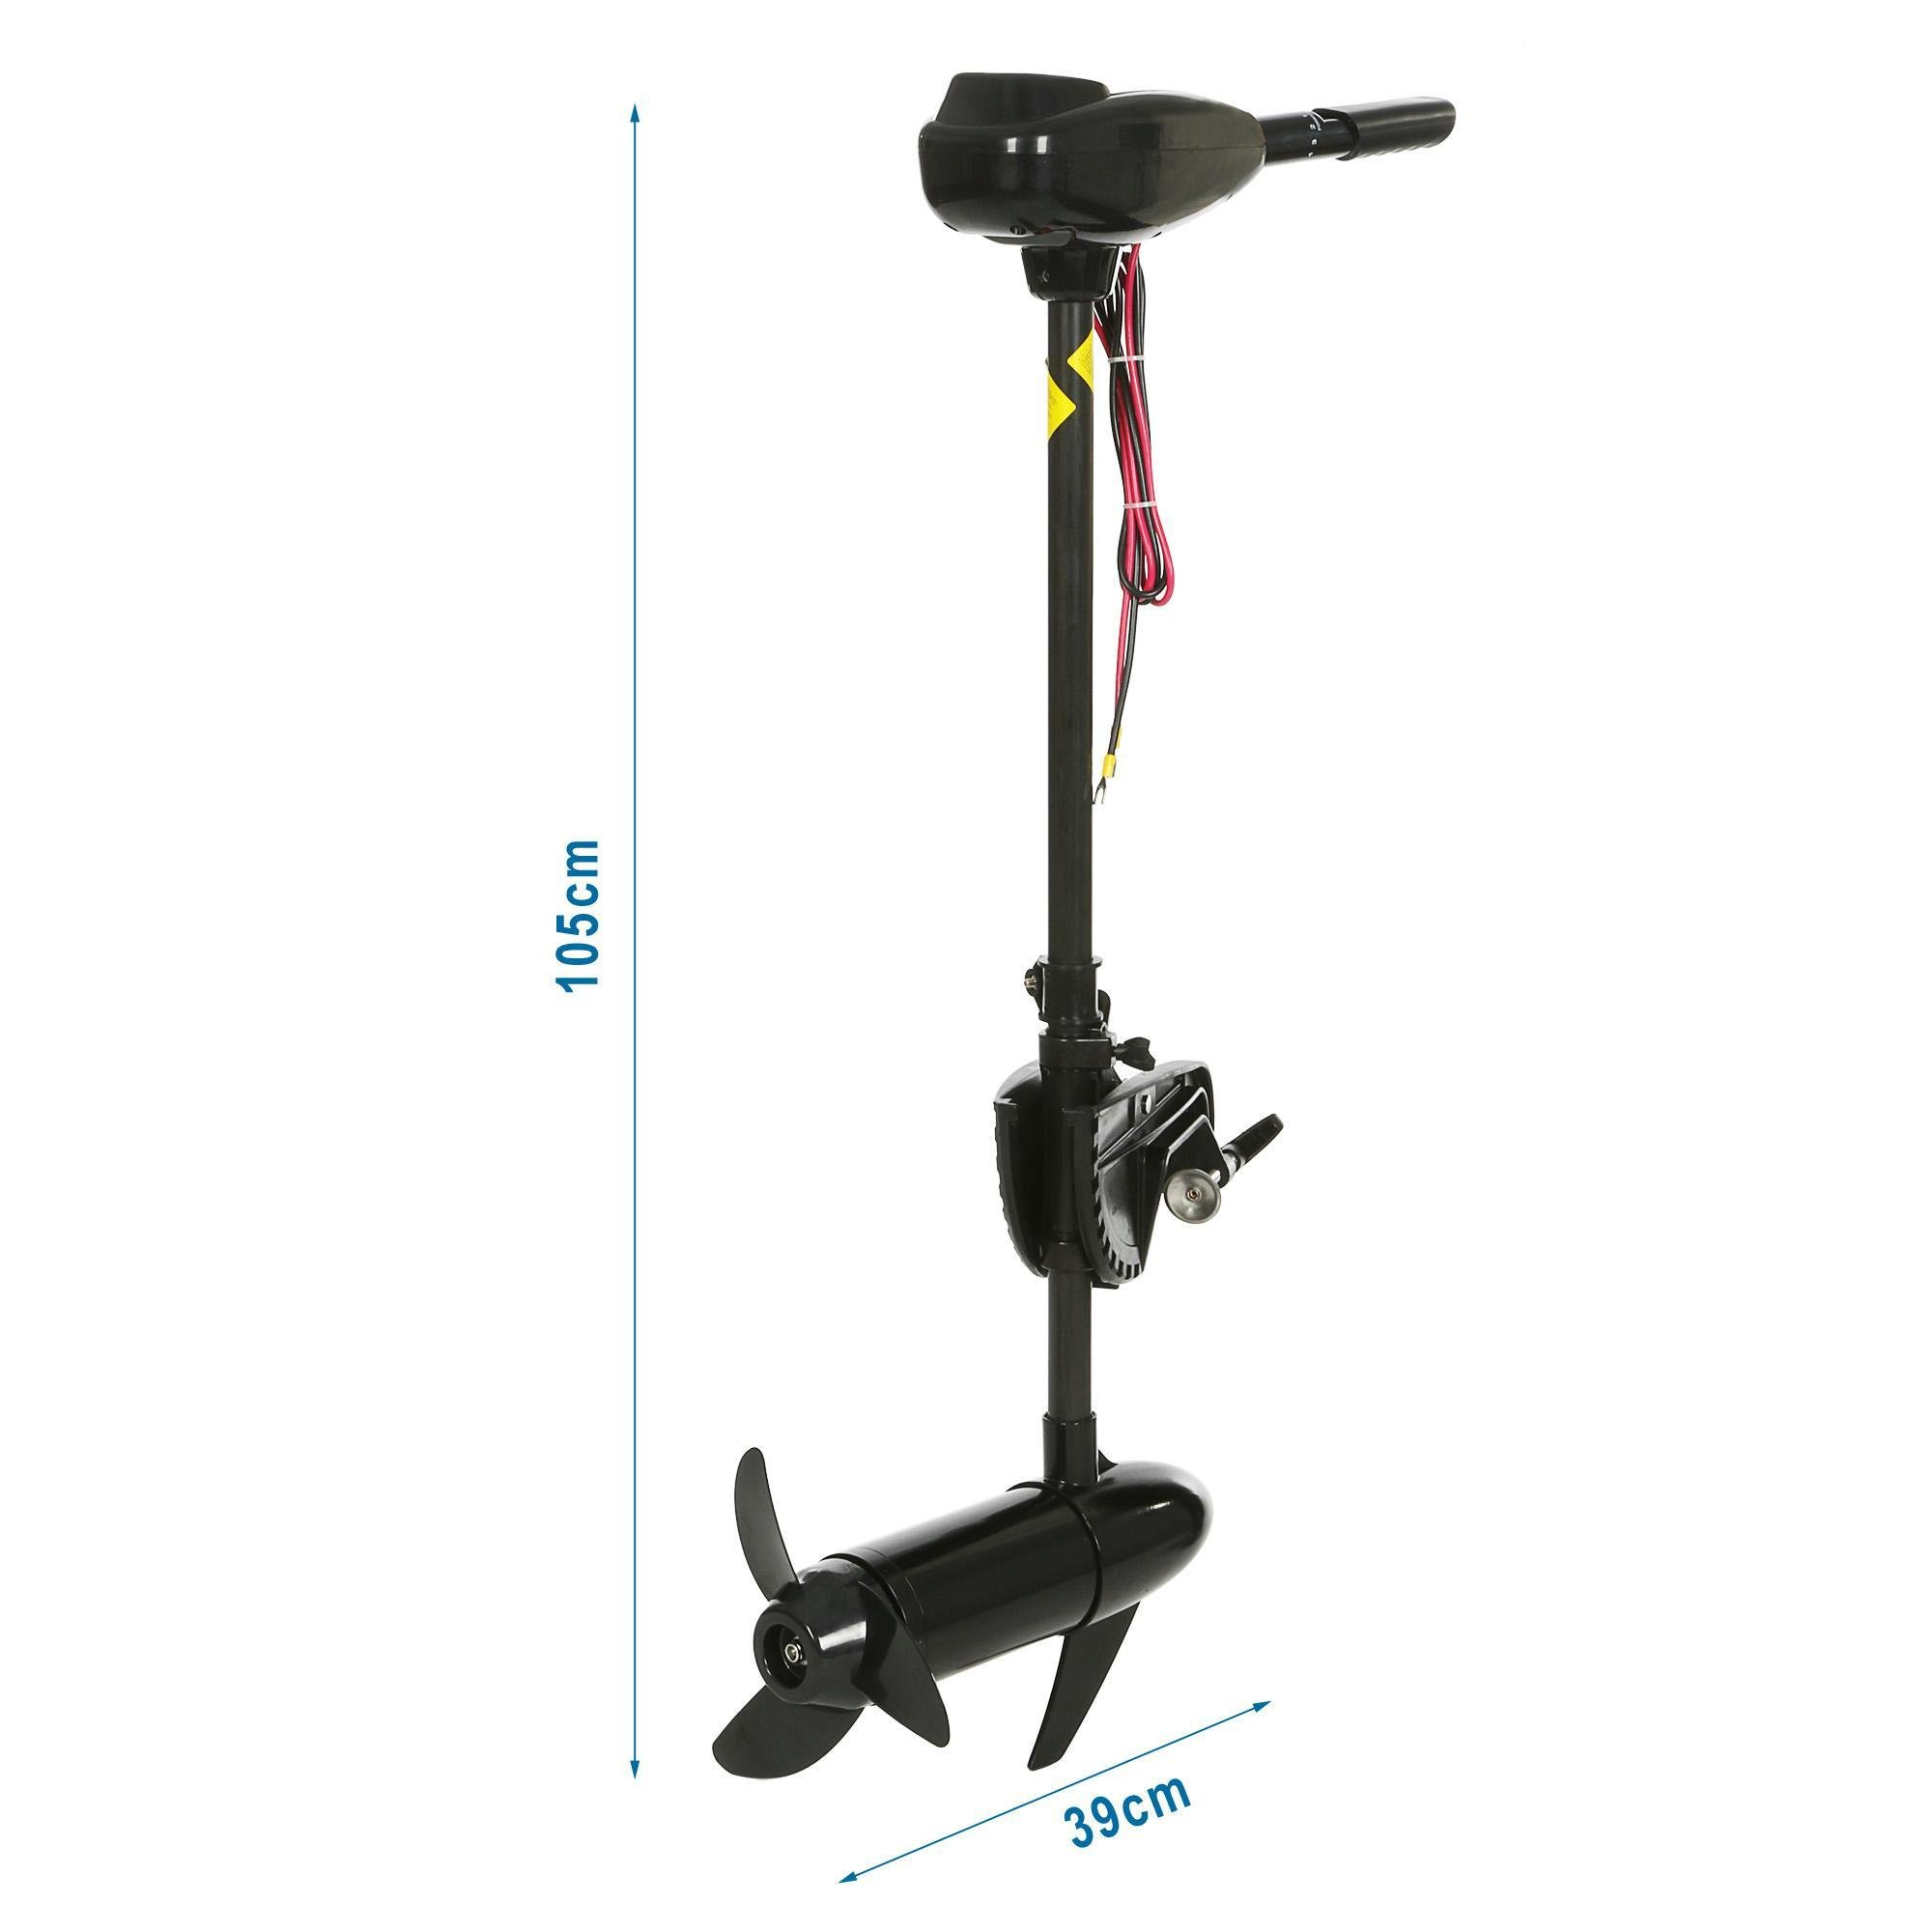 12V 55 Pound Thrust Ship Boat 8 Speed Hand Control Black Trolling Motor for Inflatable Boats [US STOCK]